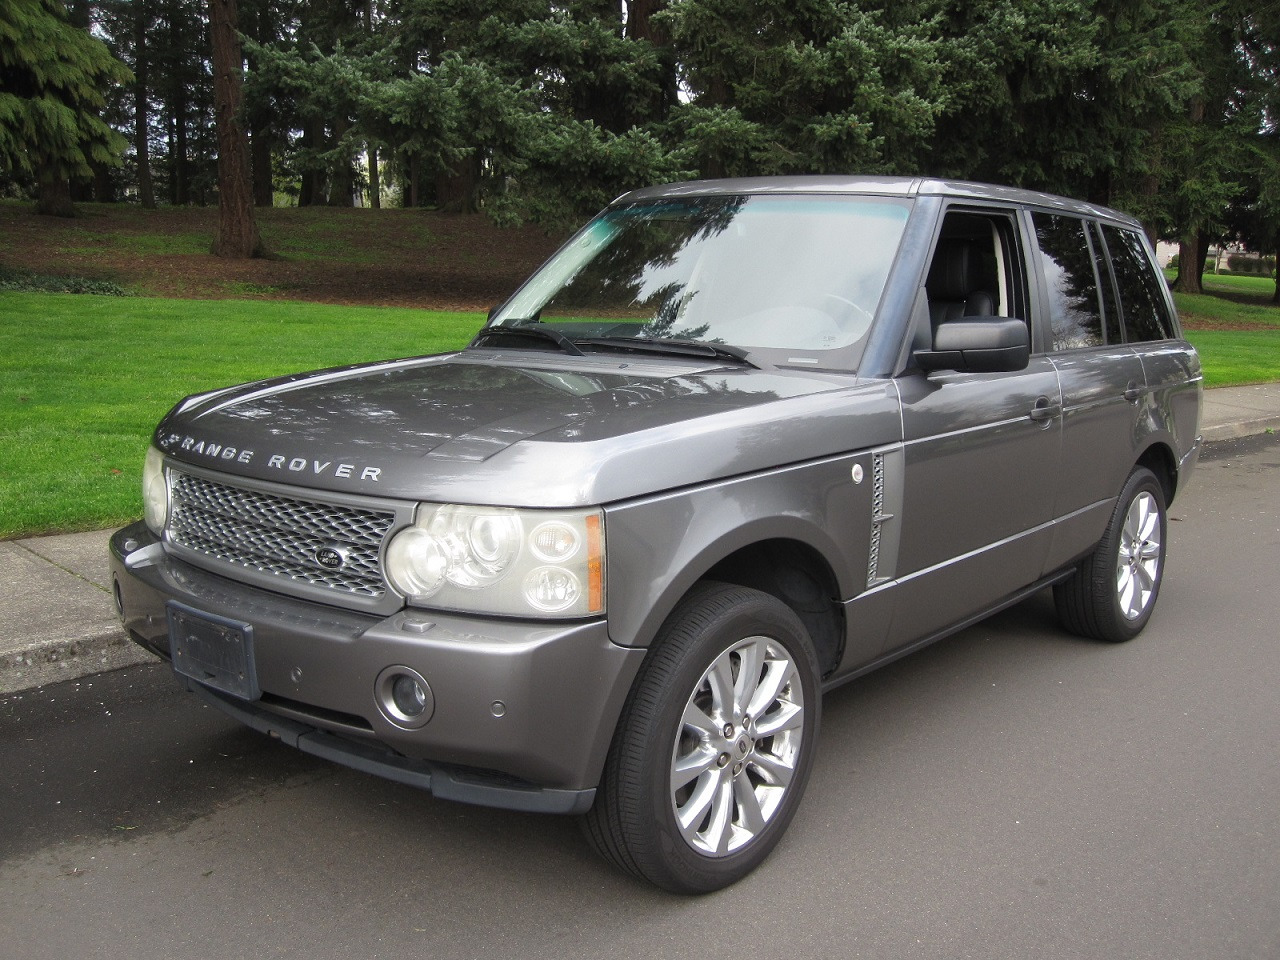 2009 Land Rover Range Rover Supercharged